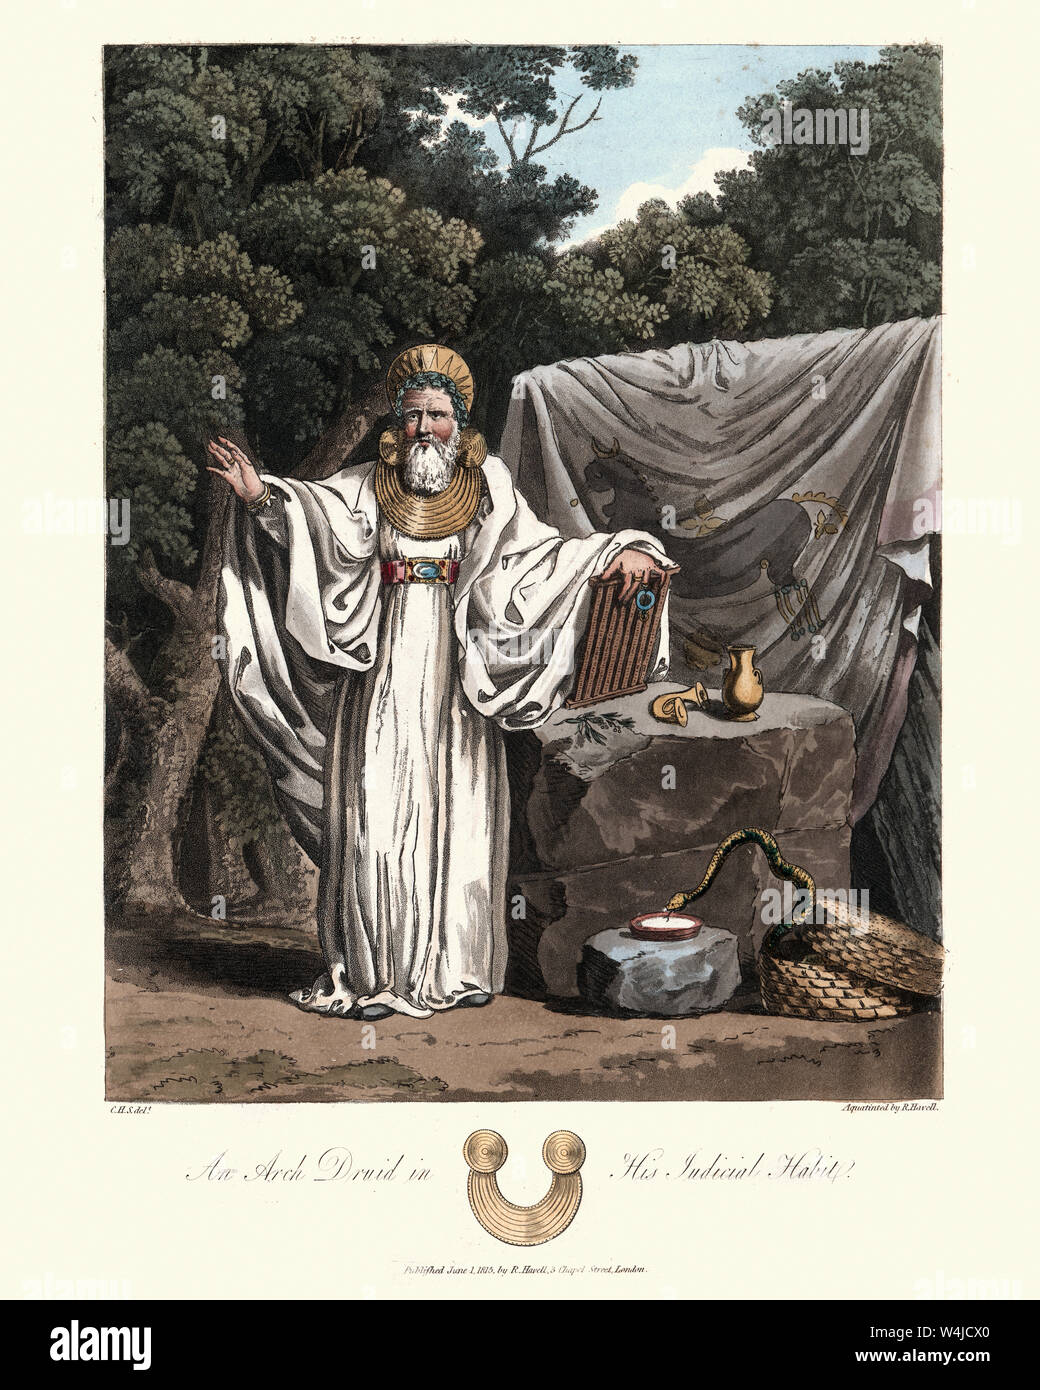 Vintage engraving of Druids, Archdruid in his judicial habit. 1815, The Costume of the Original Inhabitants of the British Islands, by MEYRICK, Samuel Stock Photo